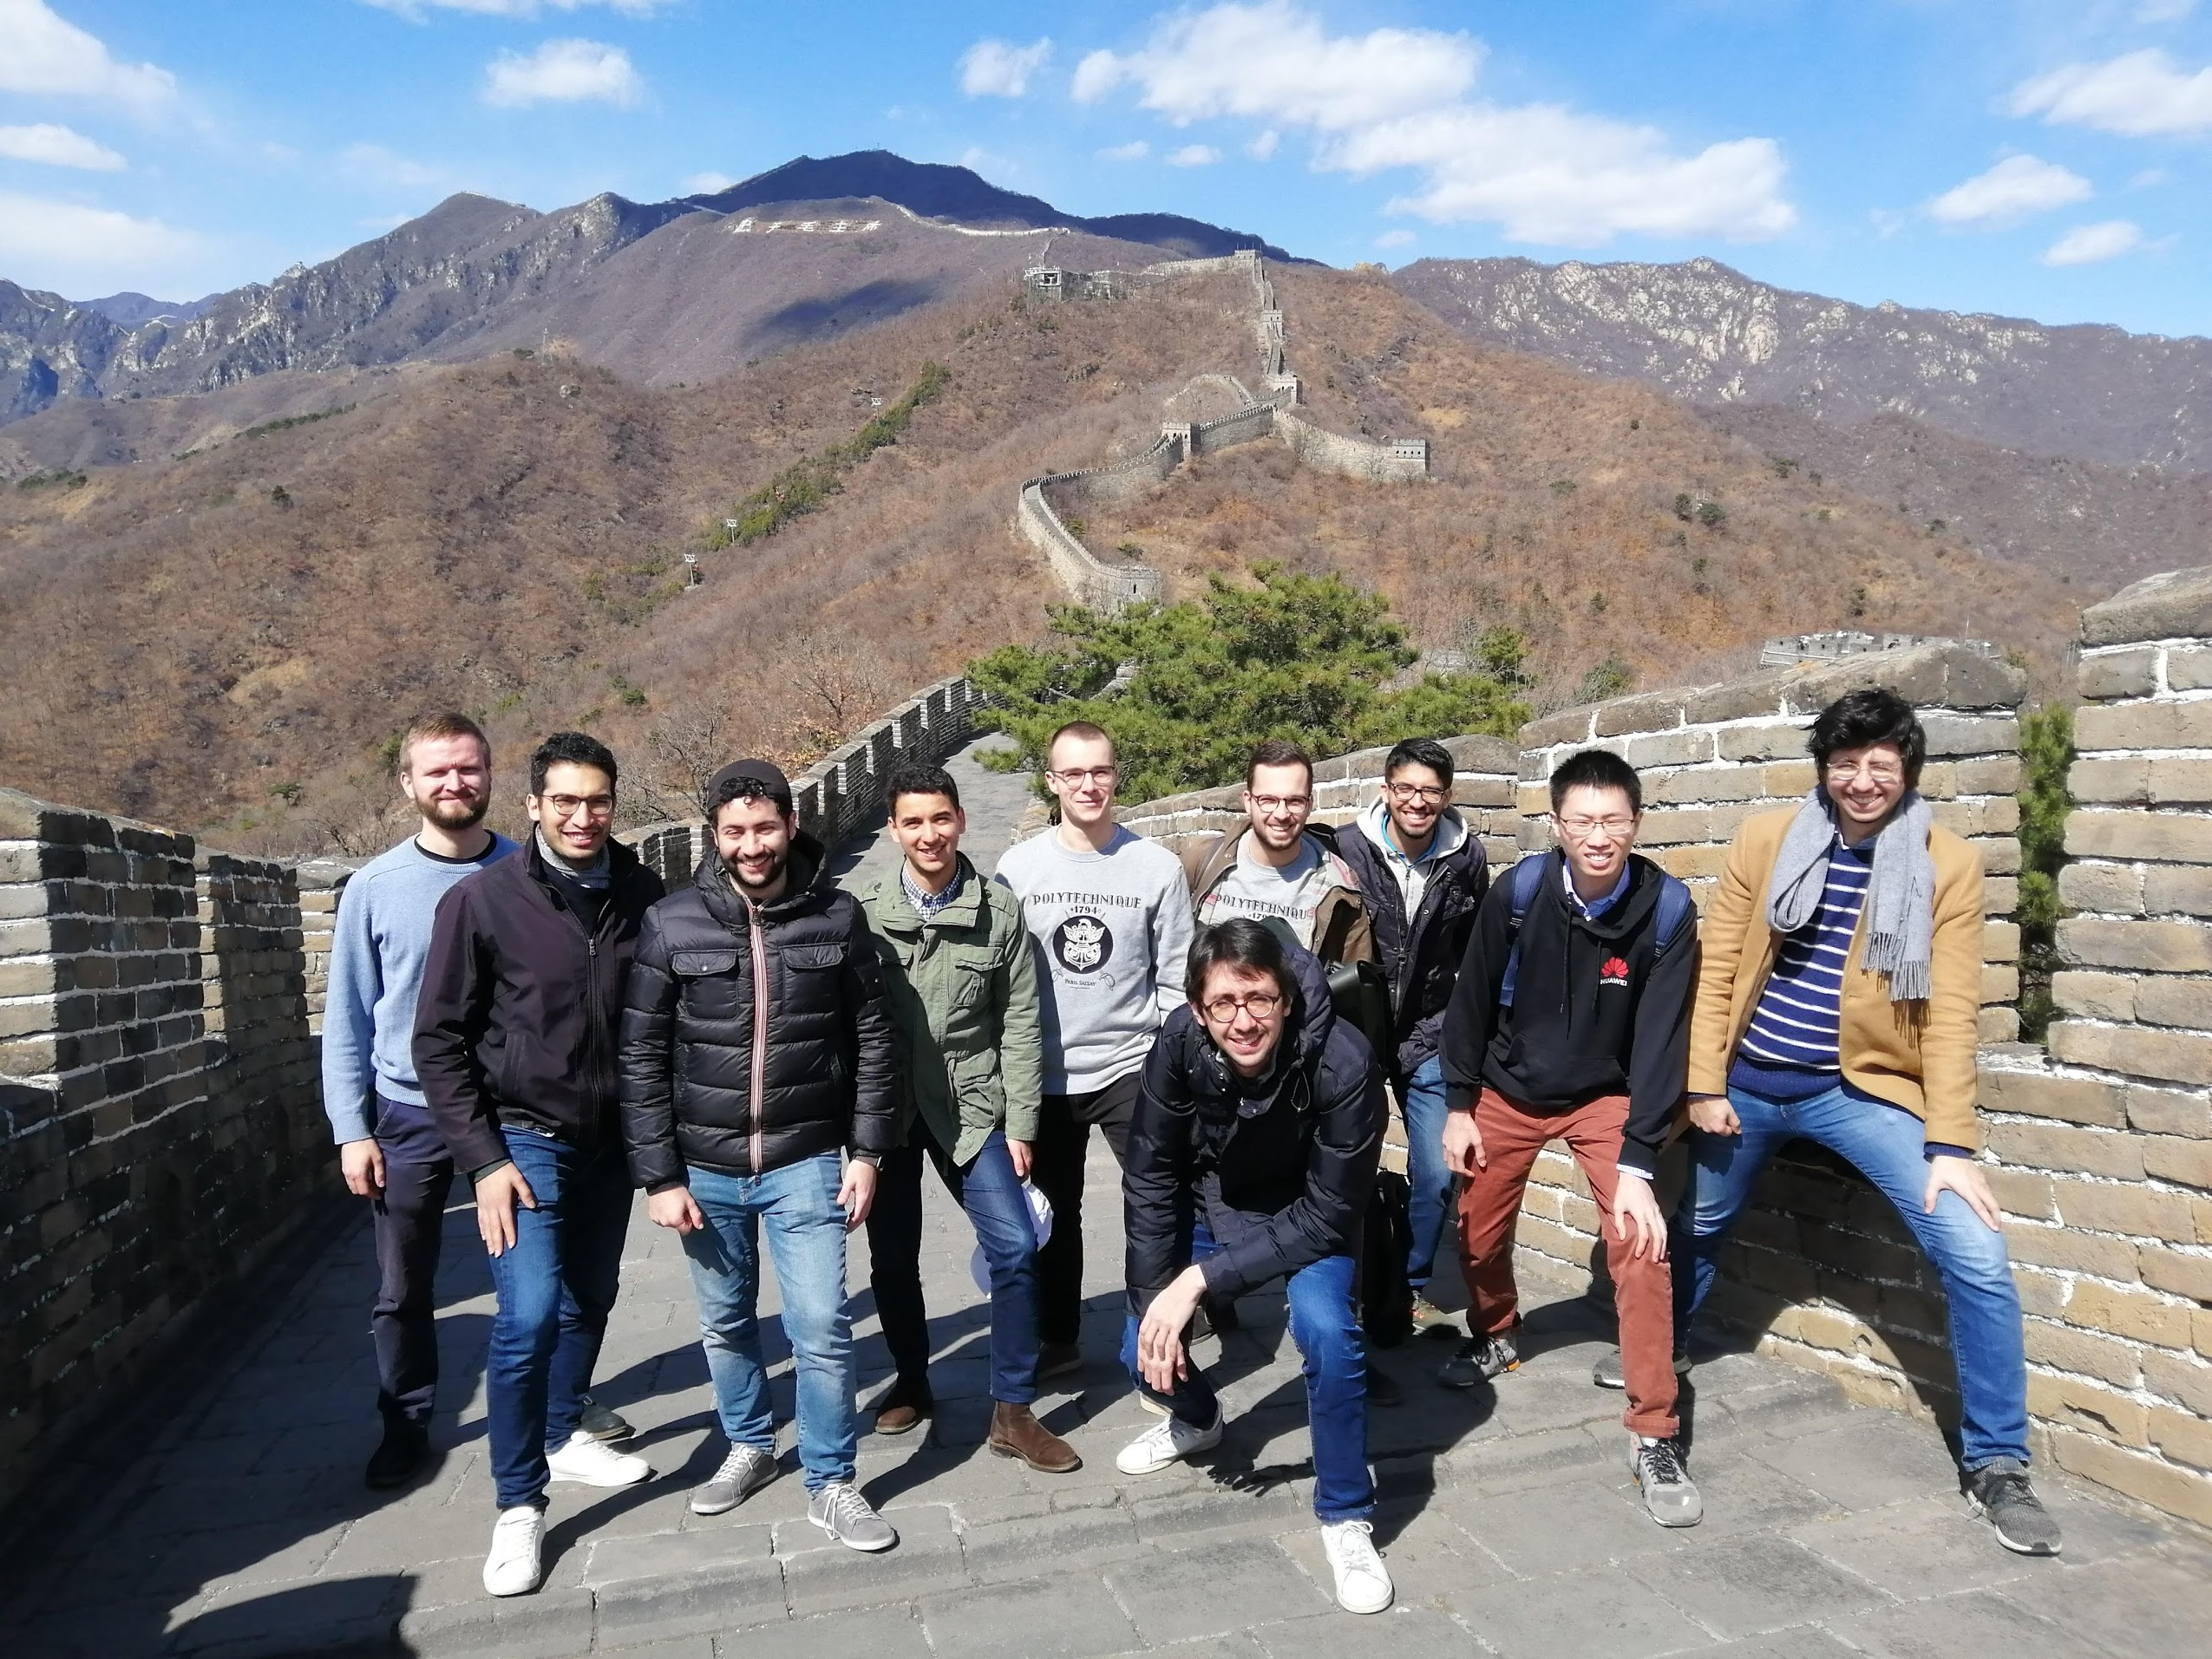 The finalists of the Huawei Big Data Challenge 2018 on the Great Wall in China.